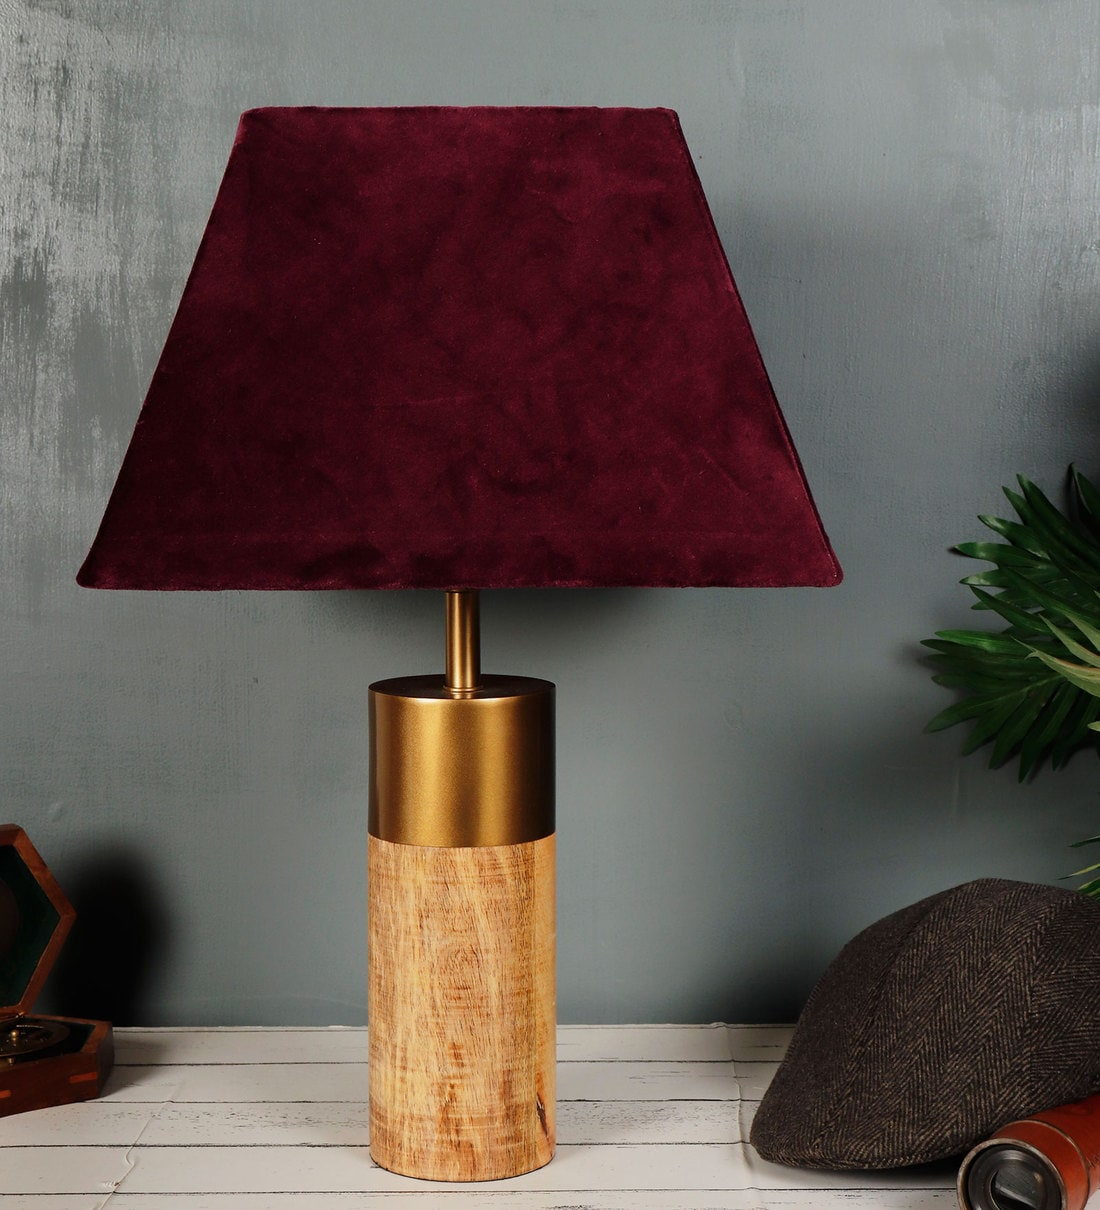 Buy Old With Gold Purple Velvet Shade Table Lamp With Wooden Brown Base By Grated Ginger Online Modern And Contemporary Table Lamps Table Lamps Lamps Lighting Pepperfry Product